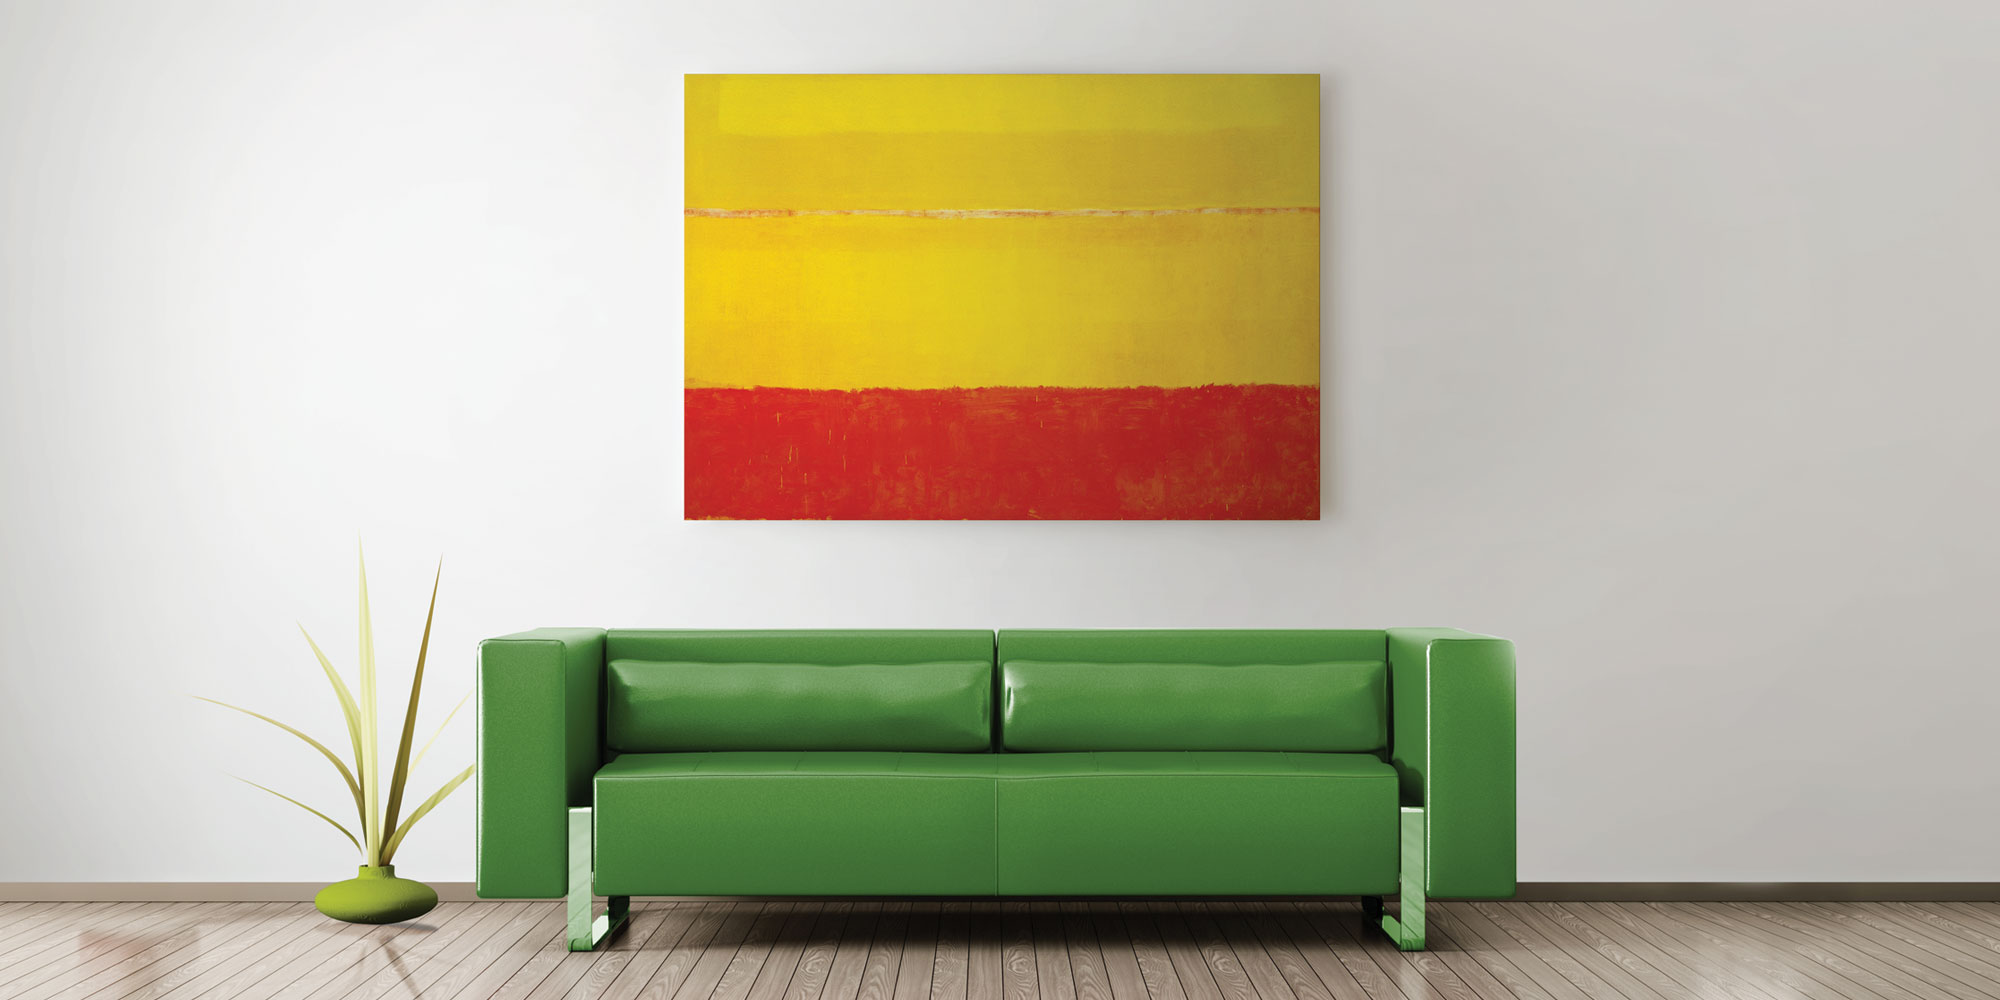 neutral7 design stretched canvas print